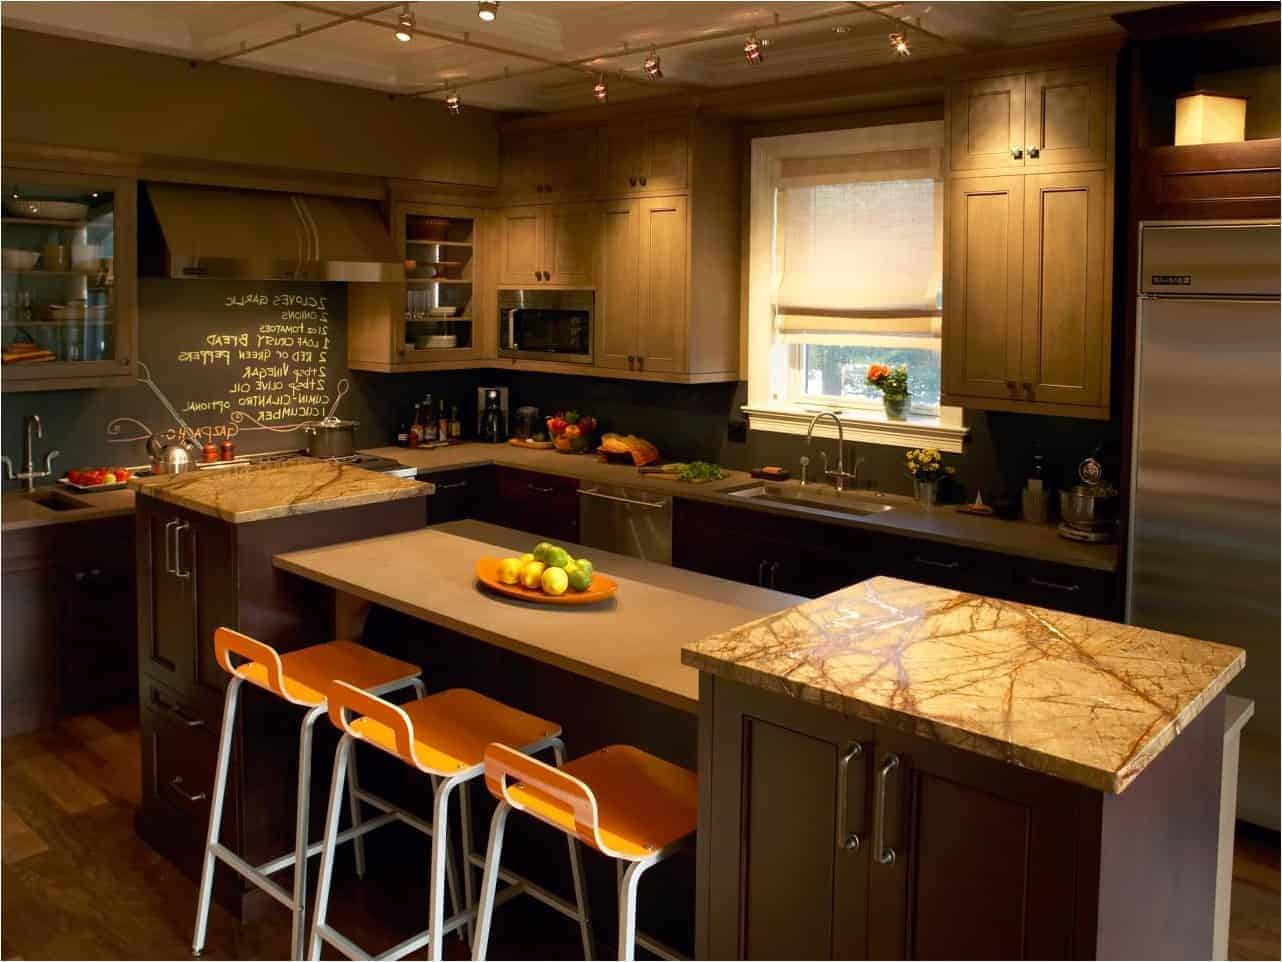 Kitchen Track Lighting Led Kitchen Lighting Creating The Love Of Light For The